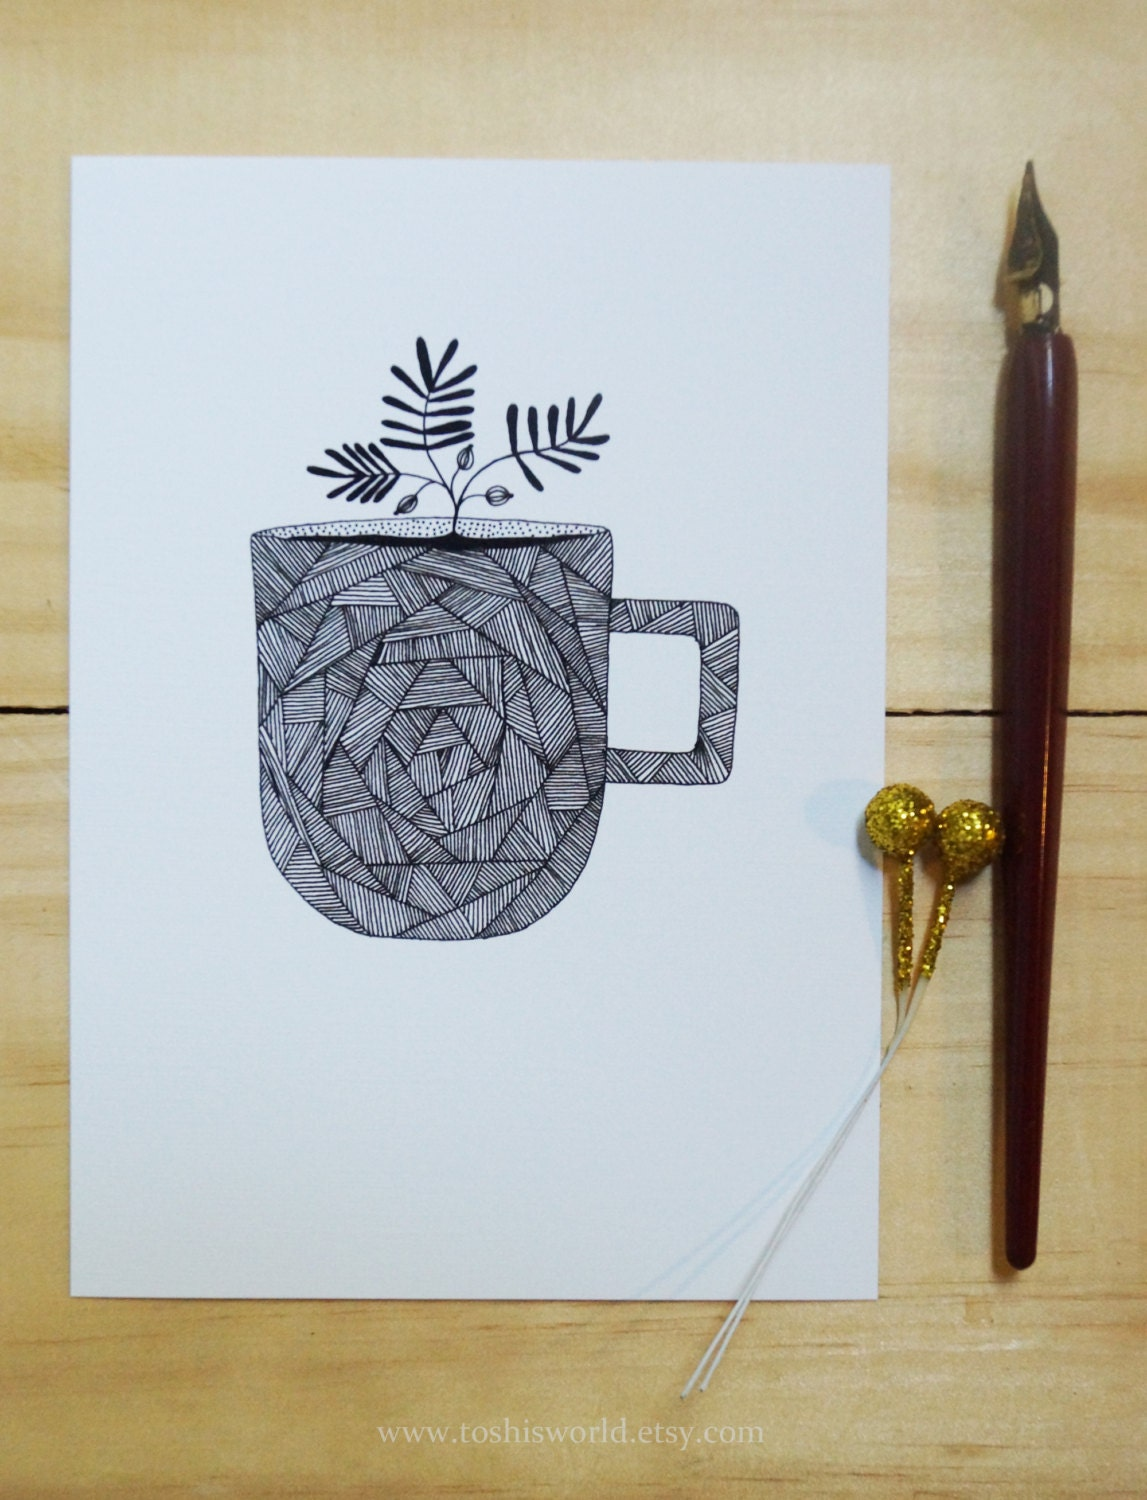 Cup. Illustration. 100 cup project - Toshisworld